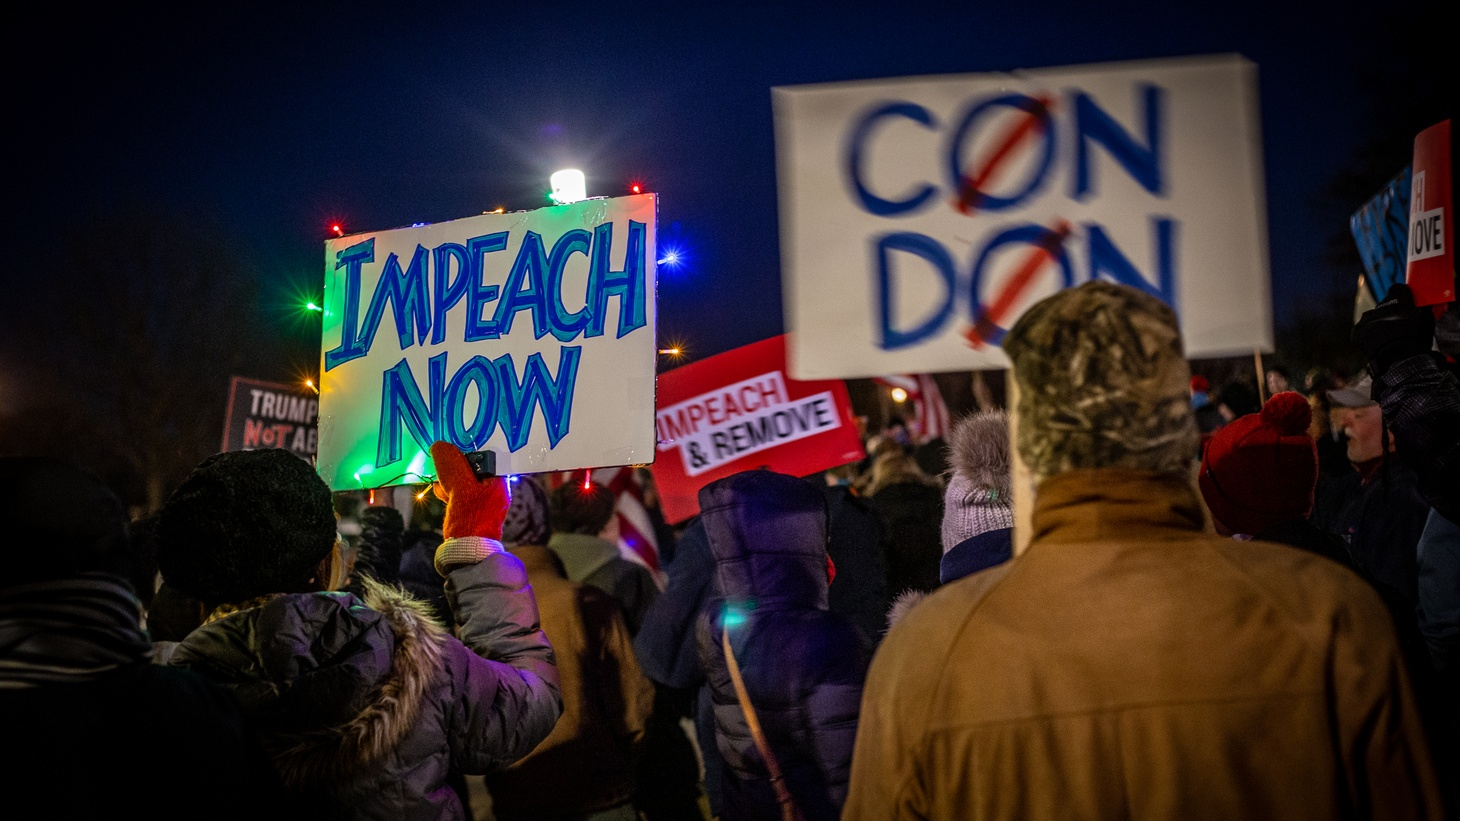 Hundreds of people gather in front of the Iowa State Capitol in Des Moines, calling for the impeachment of Donald Trump, December 17, 2019.